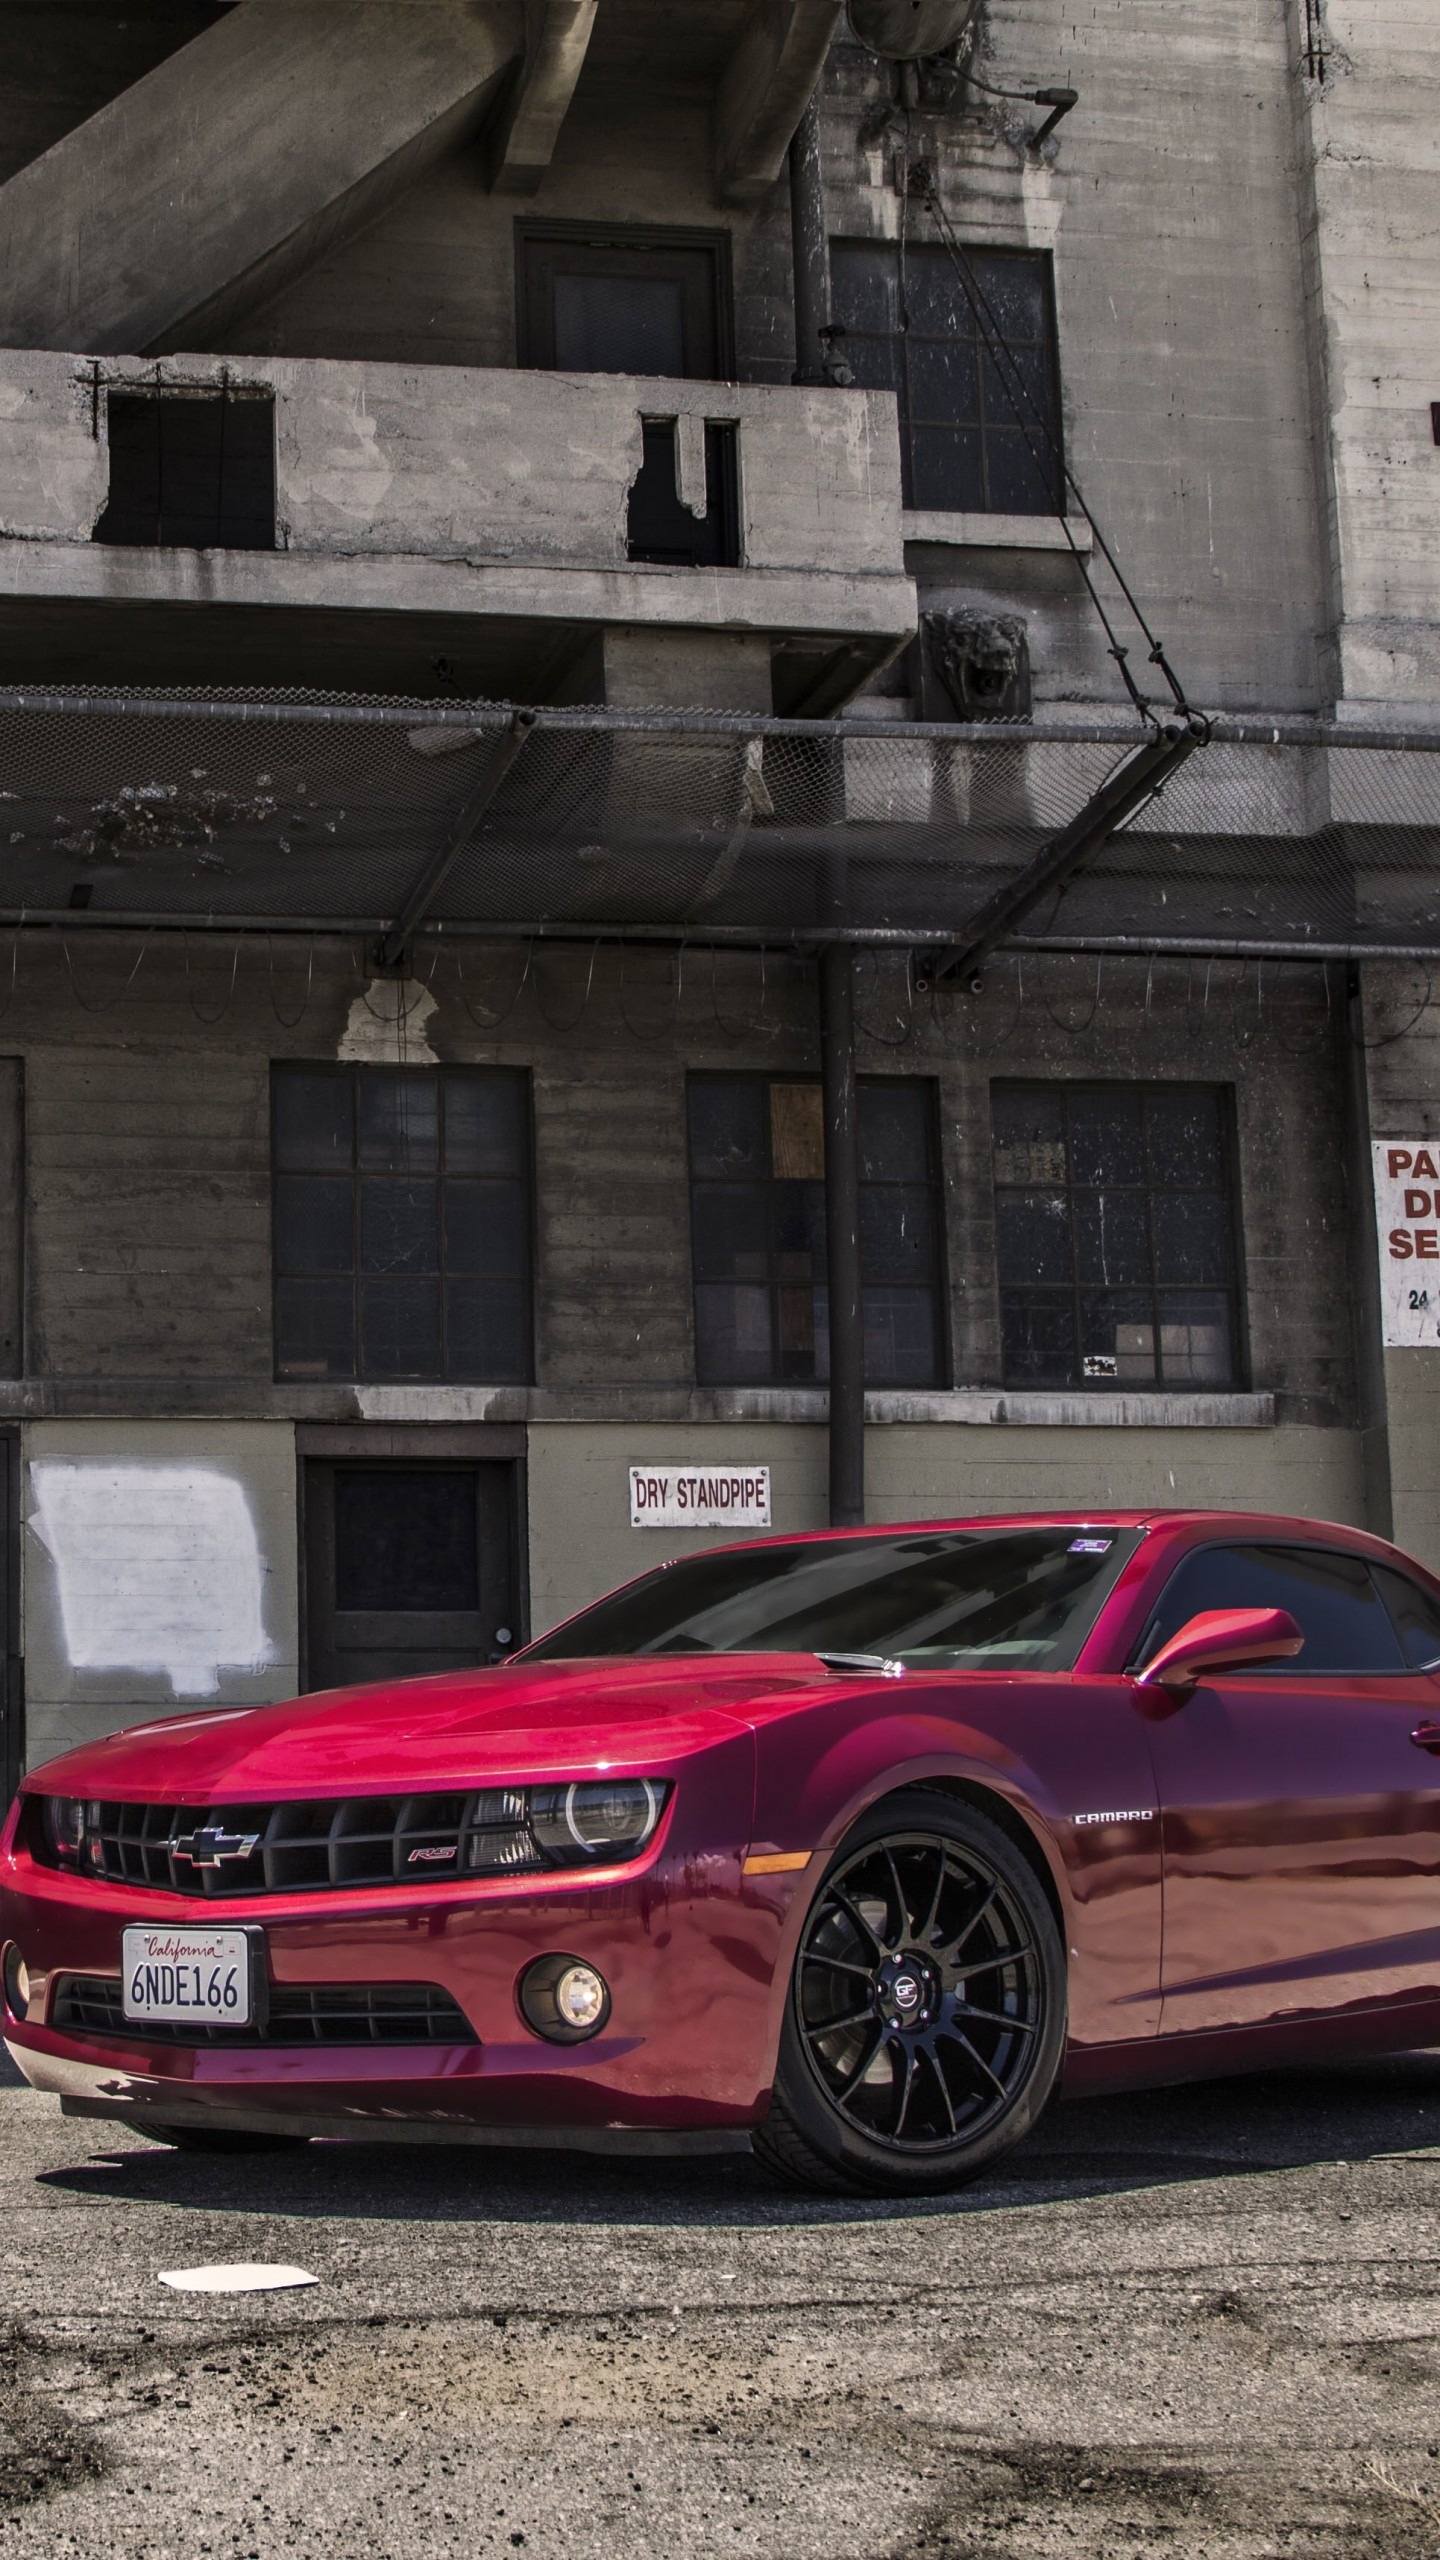 Red Chevrolet Camaro RS Wallpaper for SAMSUNG Galaxy Note 4